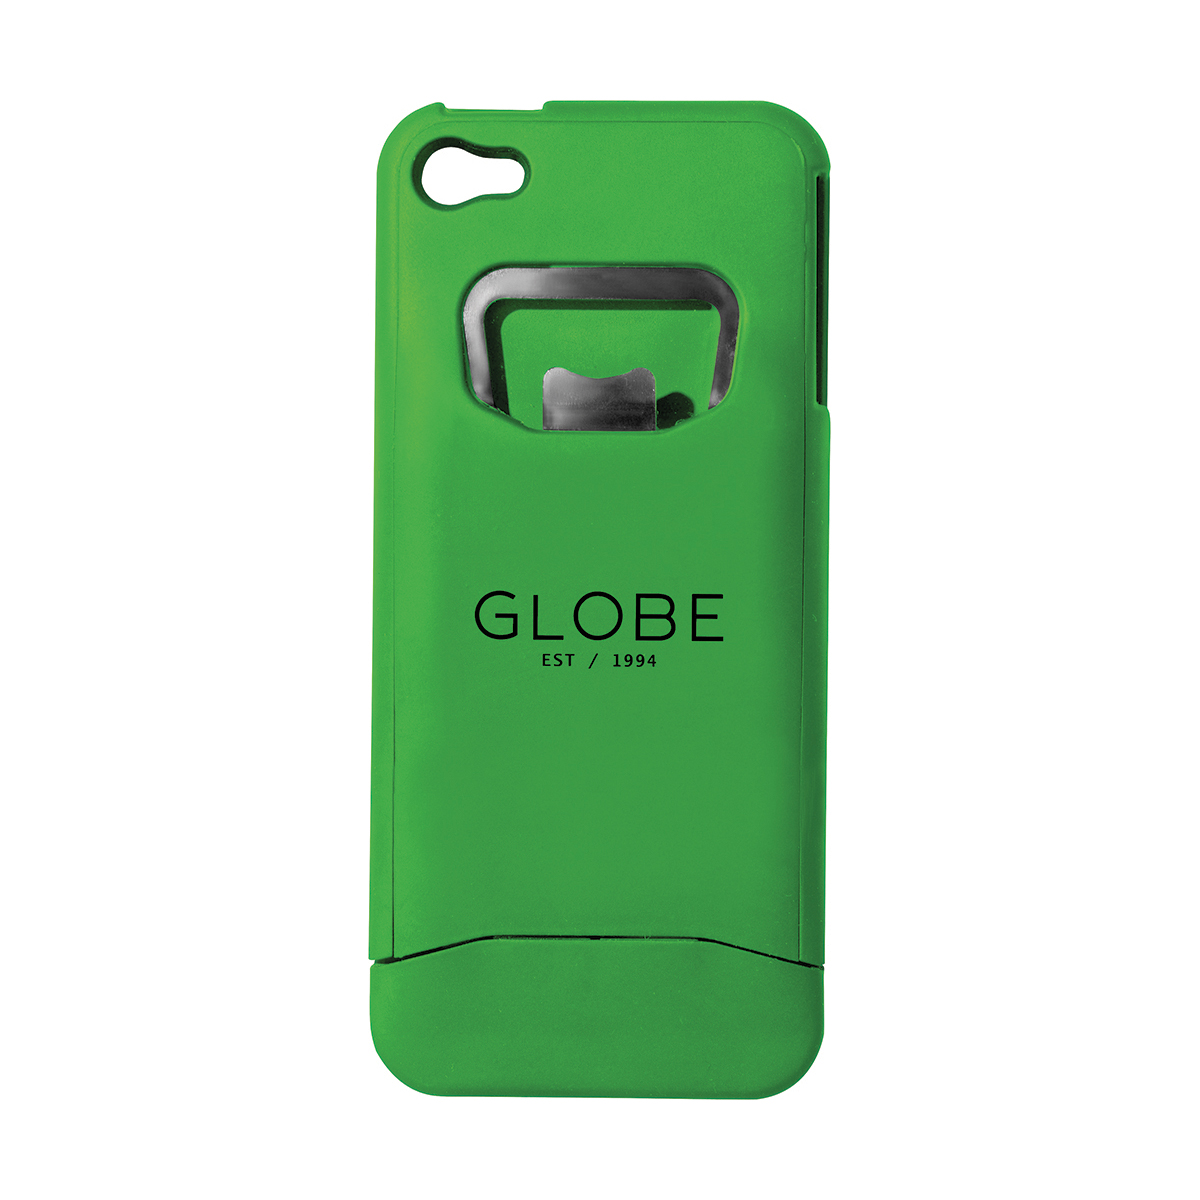 GLOBE iGlobe iPhone 5 Case